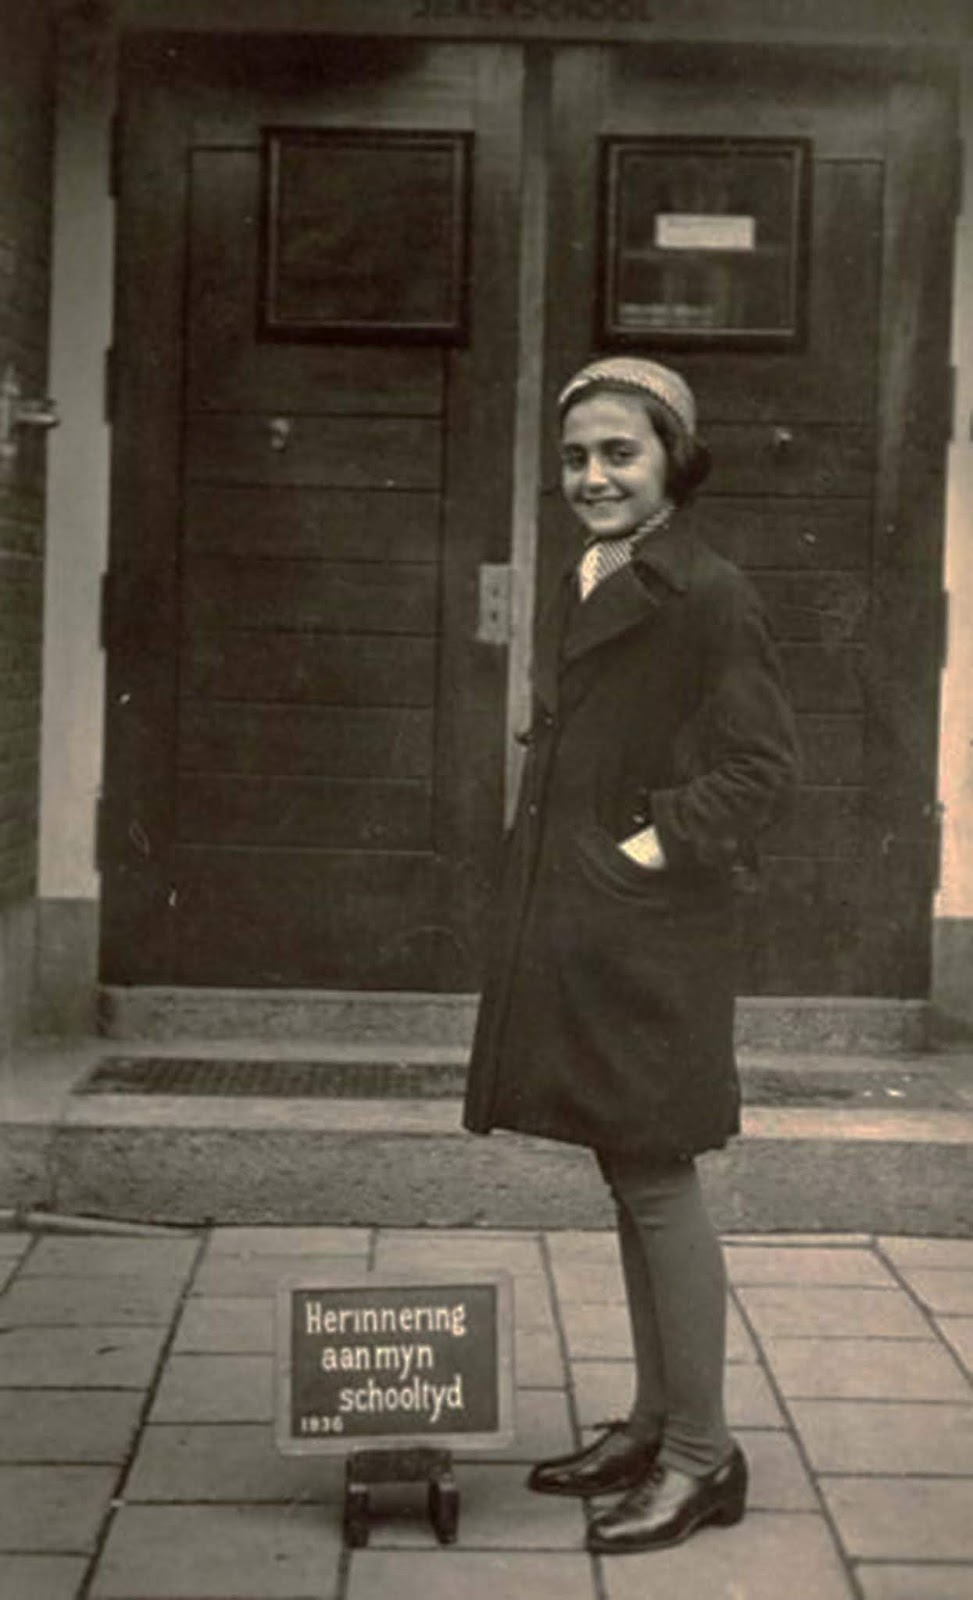 Margot Frank, the older sister of Anne Frank, standing in front of the doorway of the Jeker school in Amsterdam with a plaque at her feet that says 'memory of my school year 1936' in Dutch.